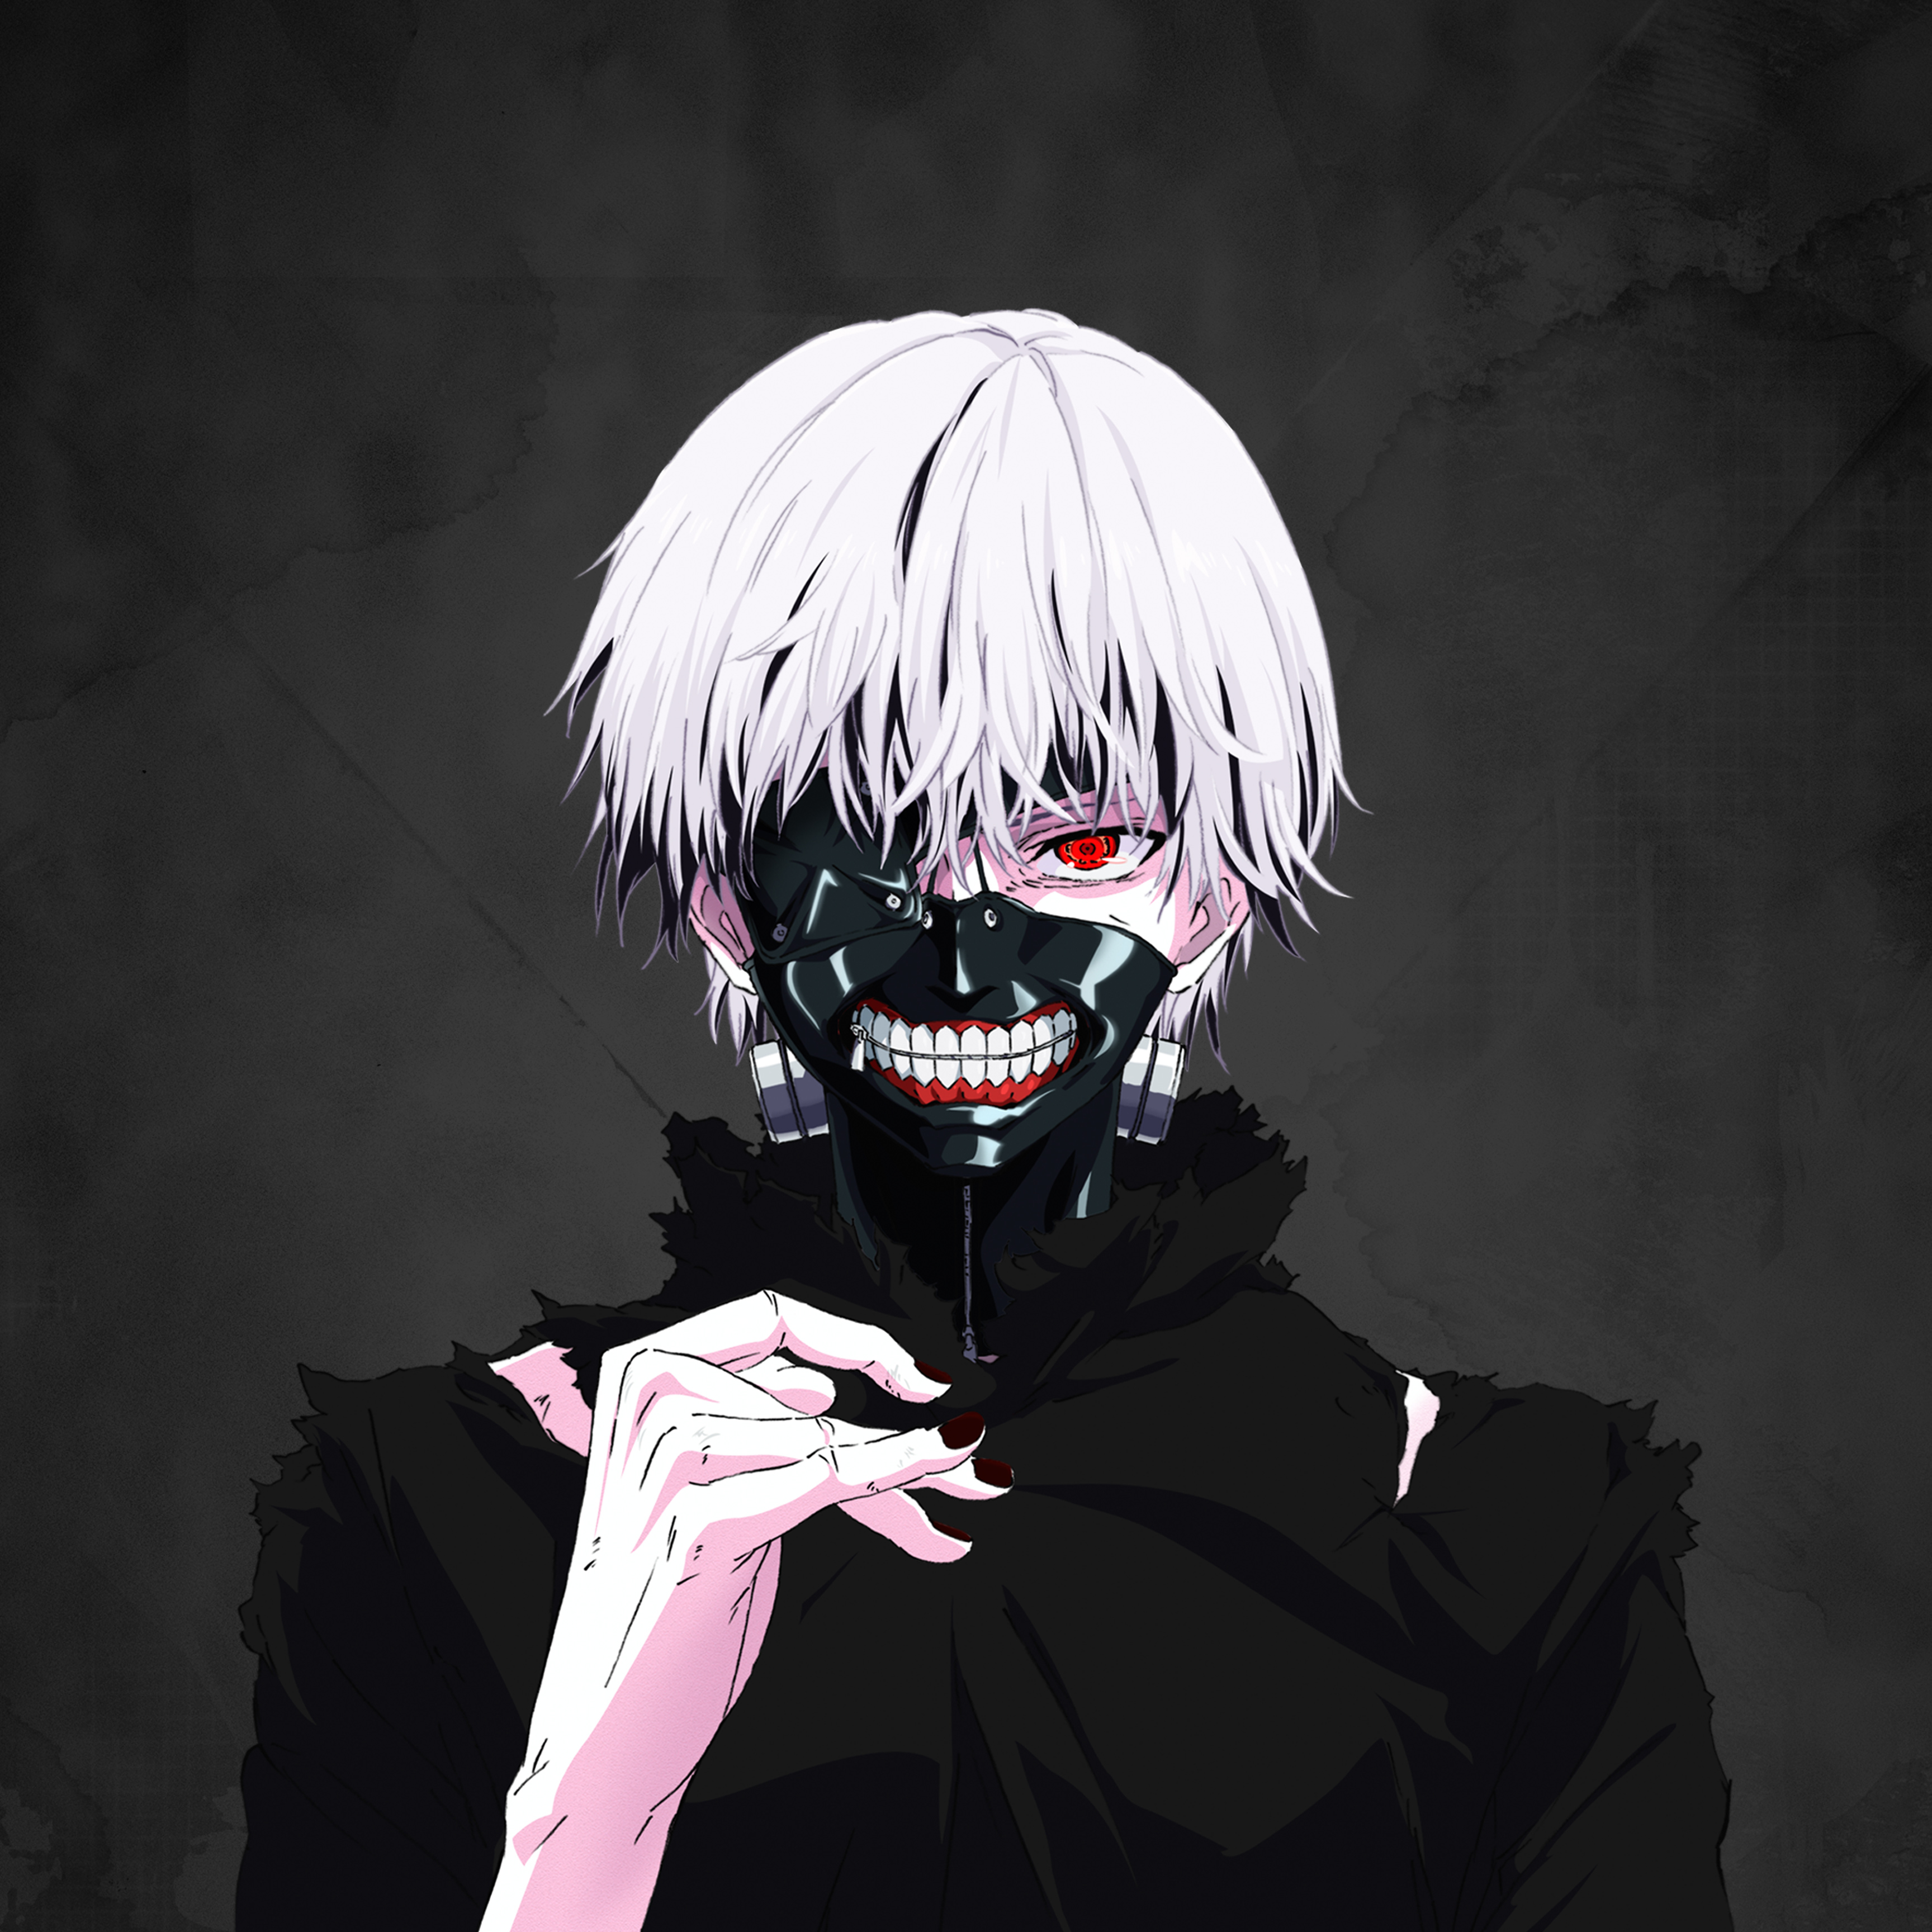 Watch Tokyo Ghoul Episodes Sub & Dub | Action/Adventure